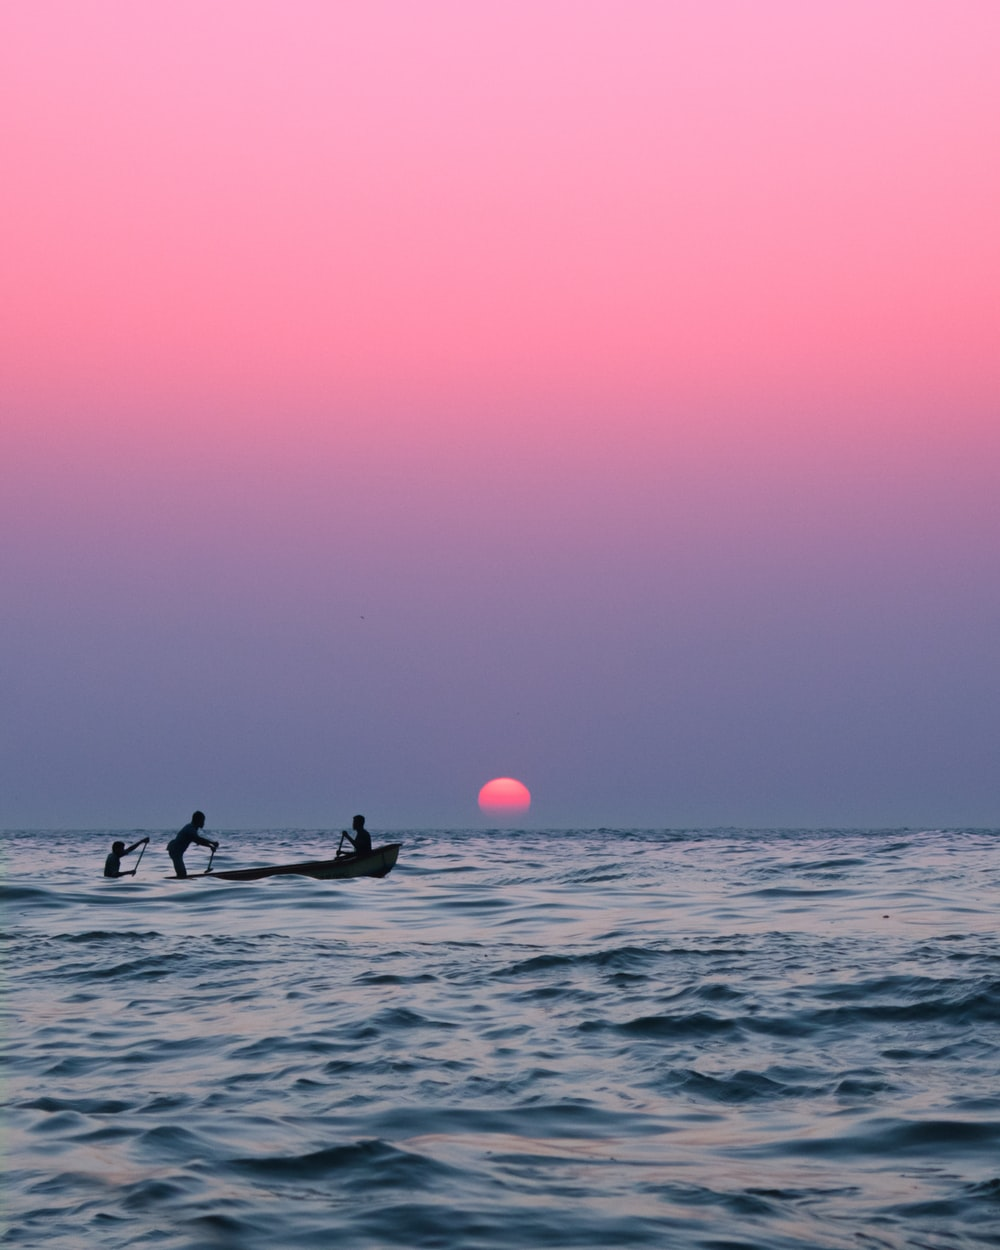 2 people riding on boat during sunset